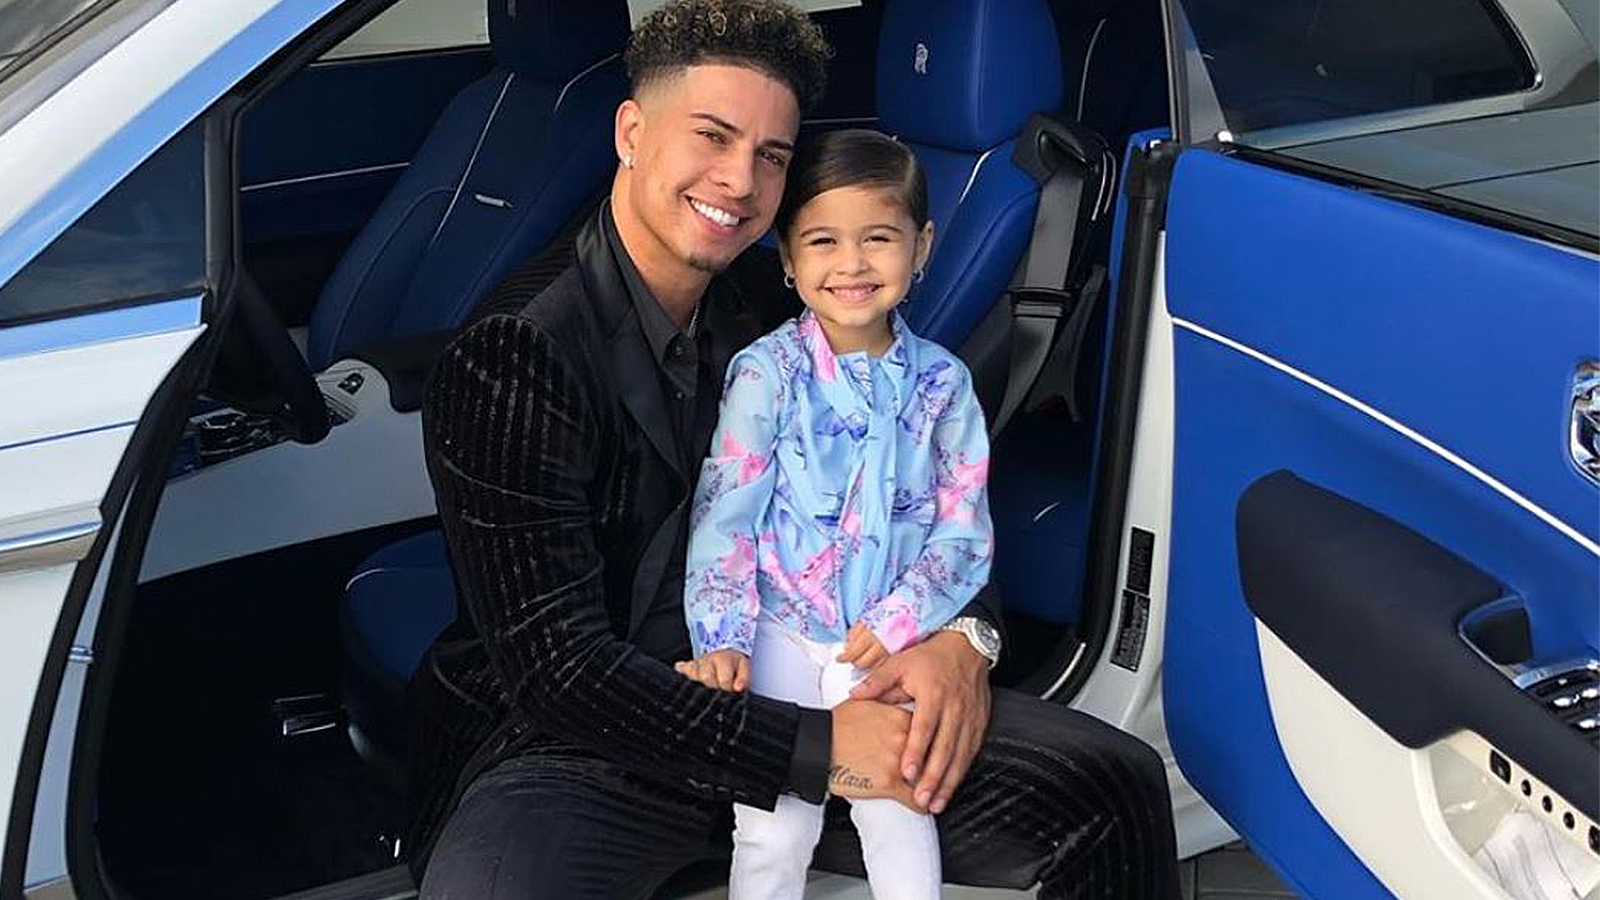 ACE Family's Austin McBroom poses with daughter Elle in a car.